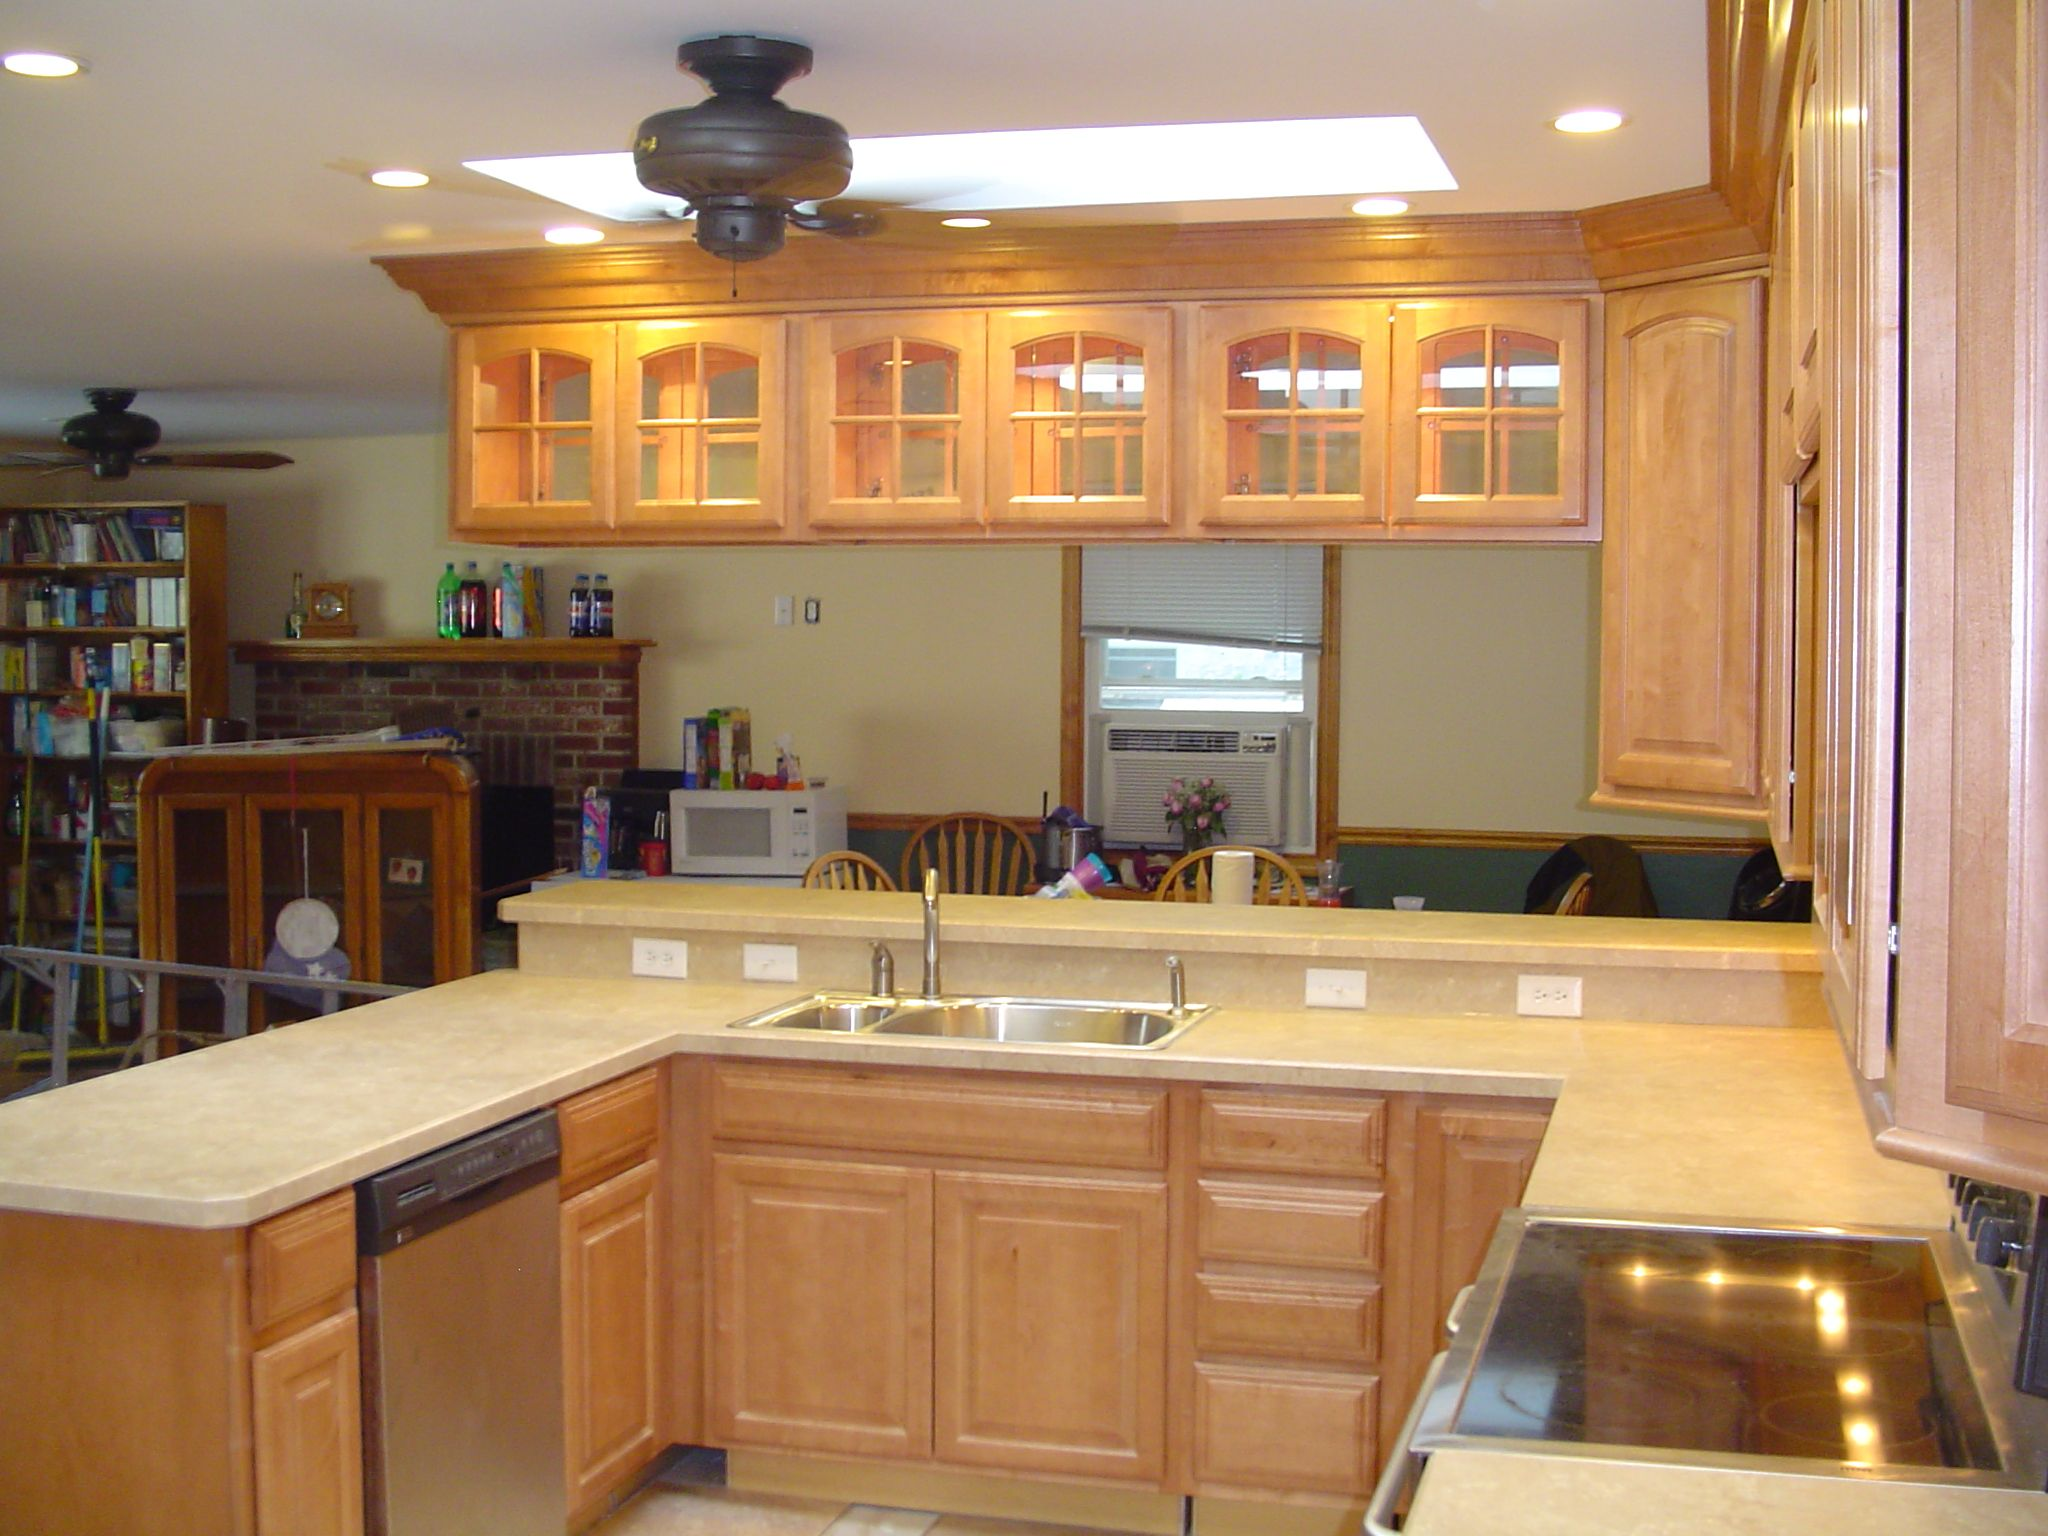 xraised ranch remodeling raised ranch kitchen after cheap kitchen remodel kitchen remodel on kitchen remodel ranch id=80430